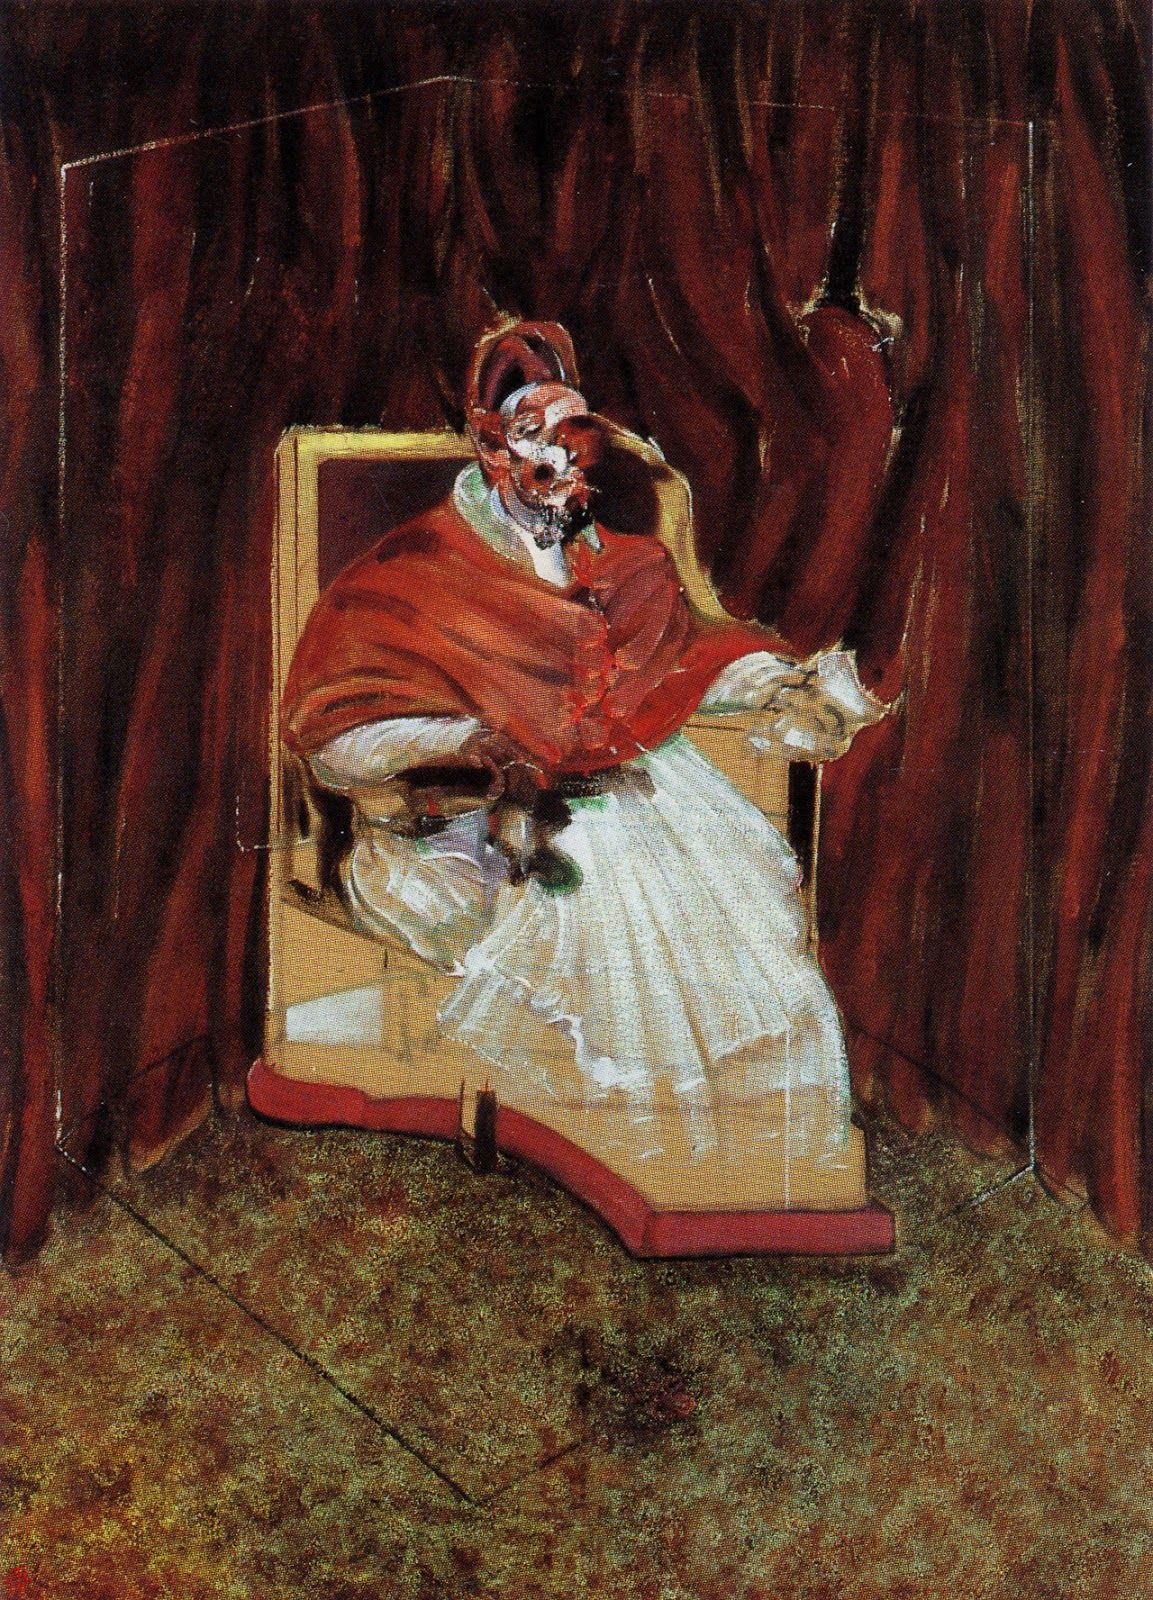 Cup3Tint3: Francis Bacon [Irish-born British Expressionist Painter, 1909-1992]